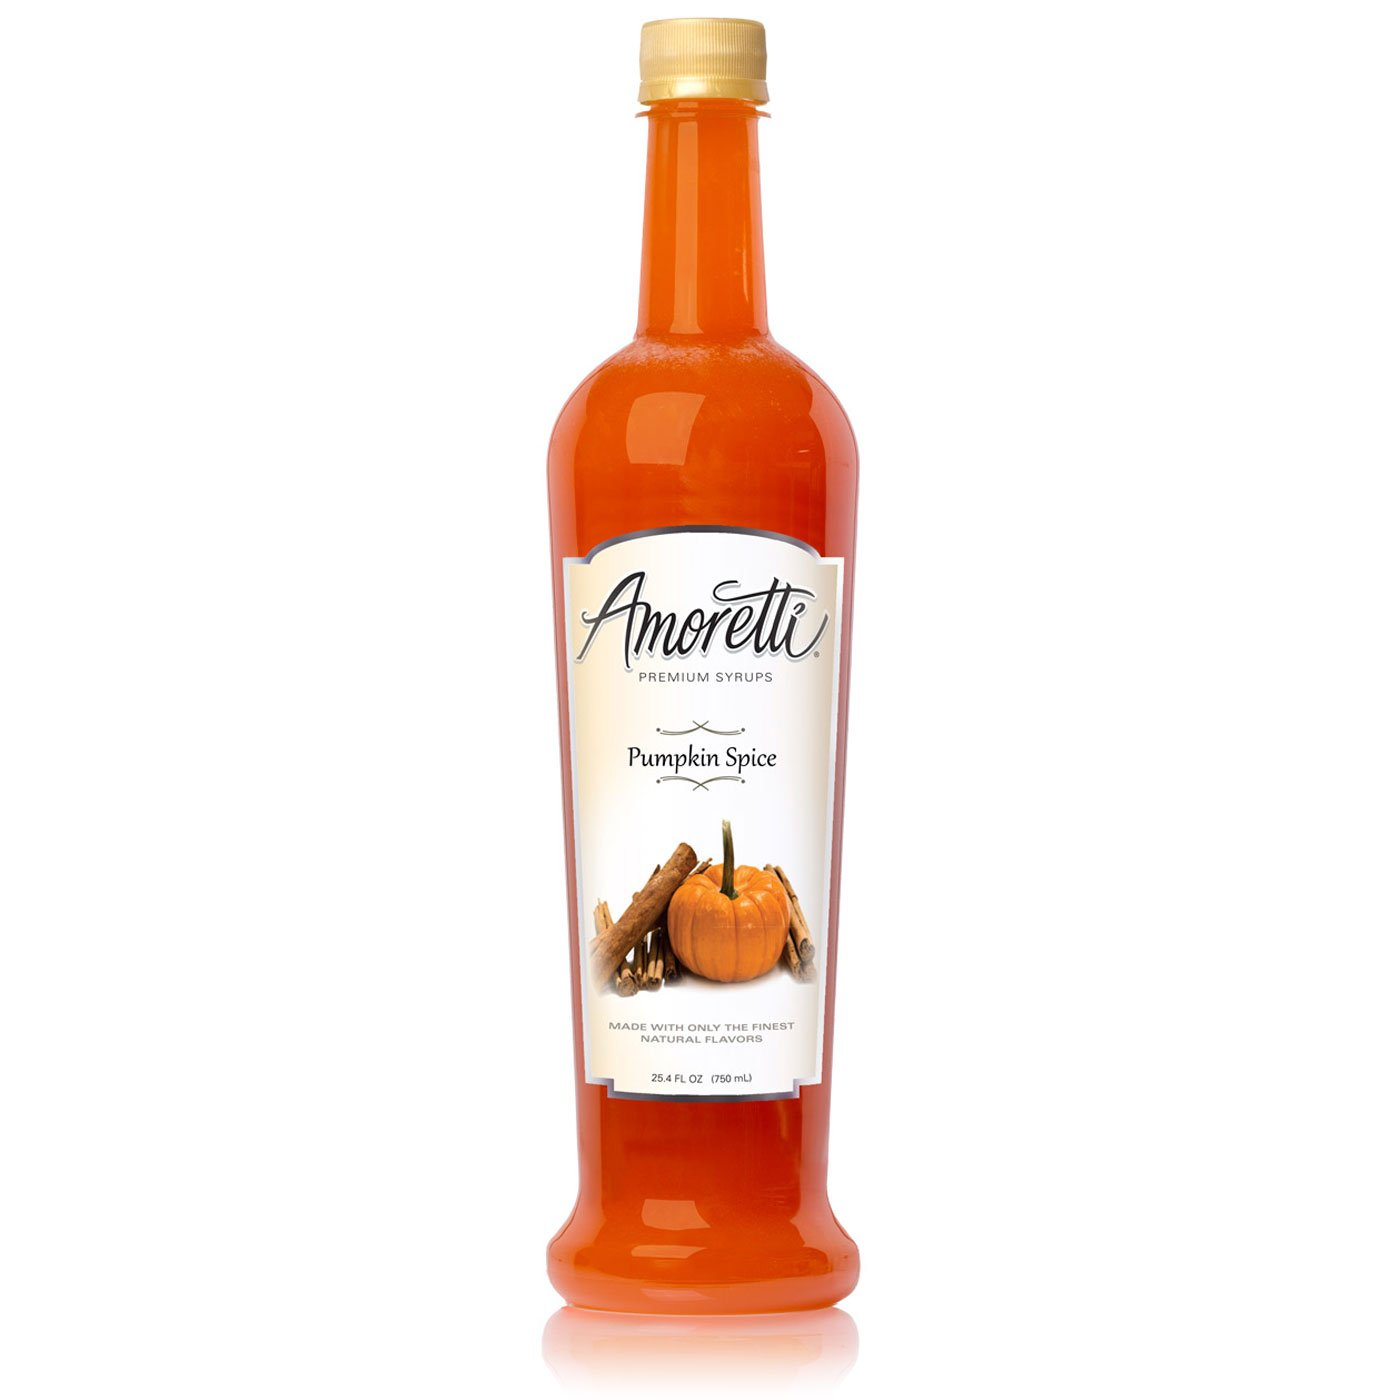 Amazon.com : Amoretti Premium Syrup, Pumpkin Spice, 25.4 Ounce (Pack of 12) : Grocery & Gourmet Food